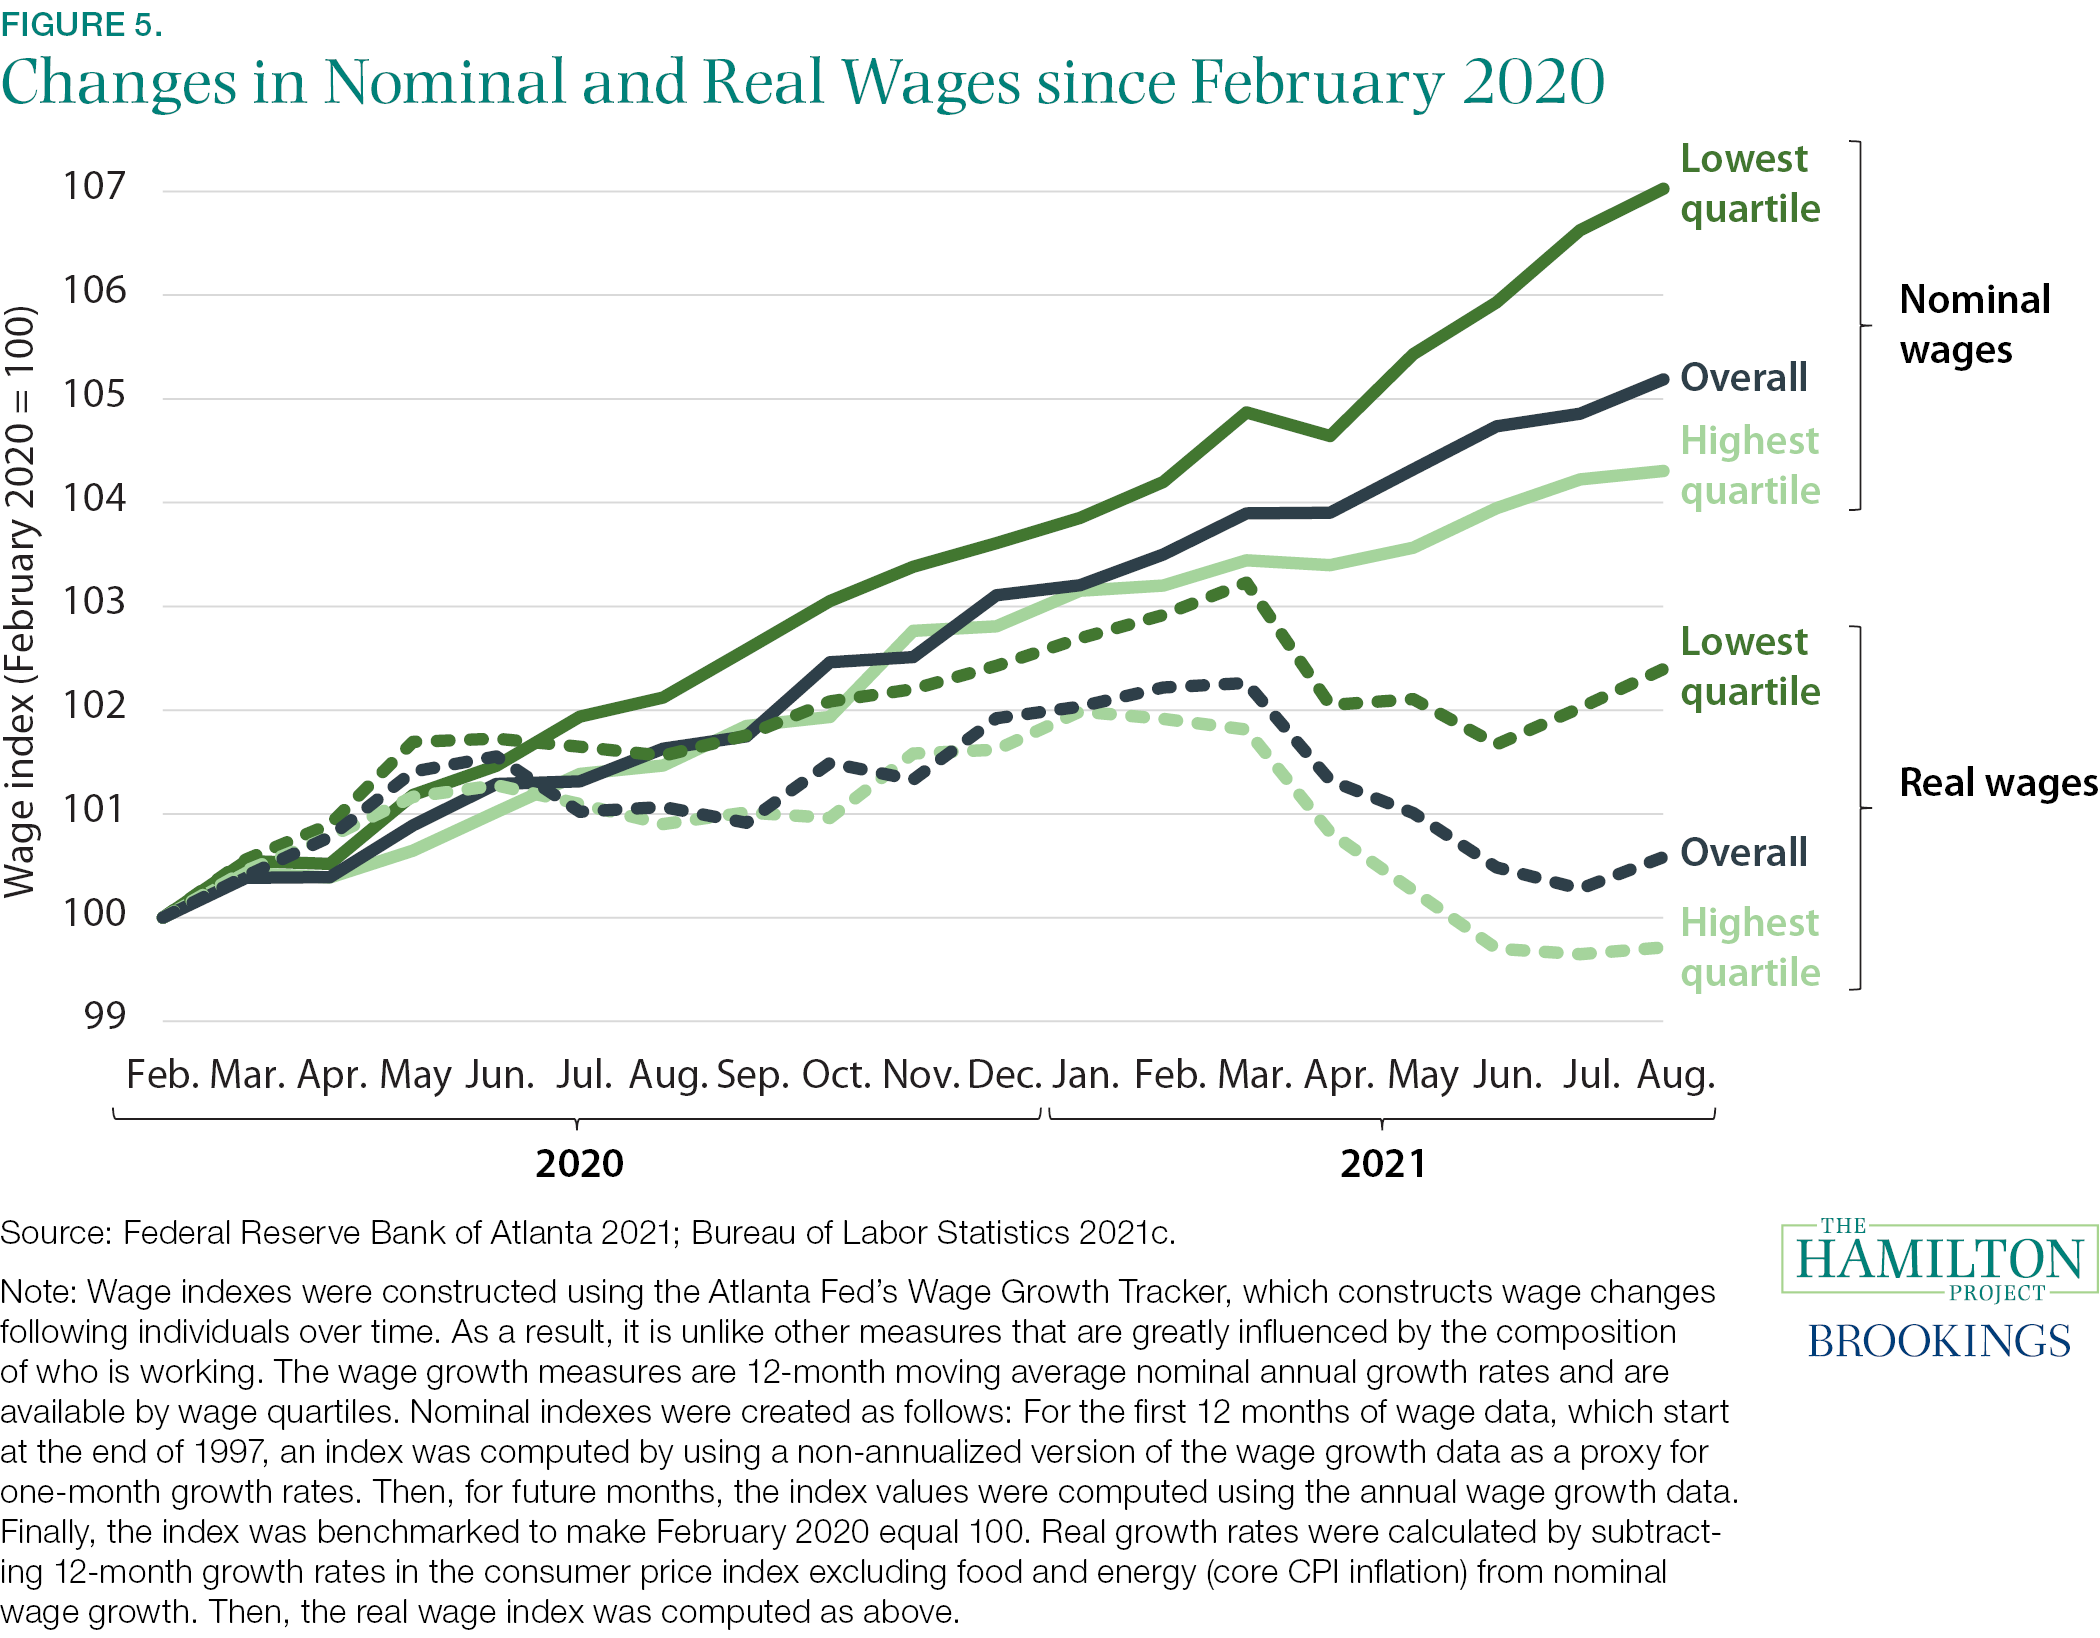 Fact 5: Even with recent jumps in inflation, lower income workers are seeing increases in real wages.